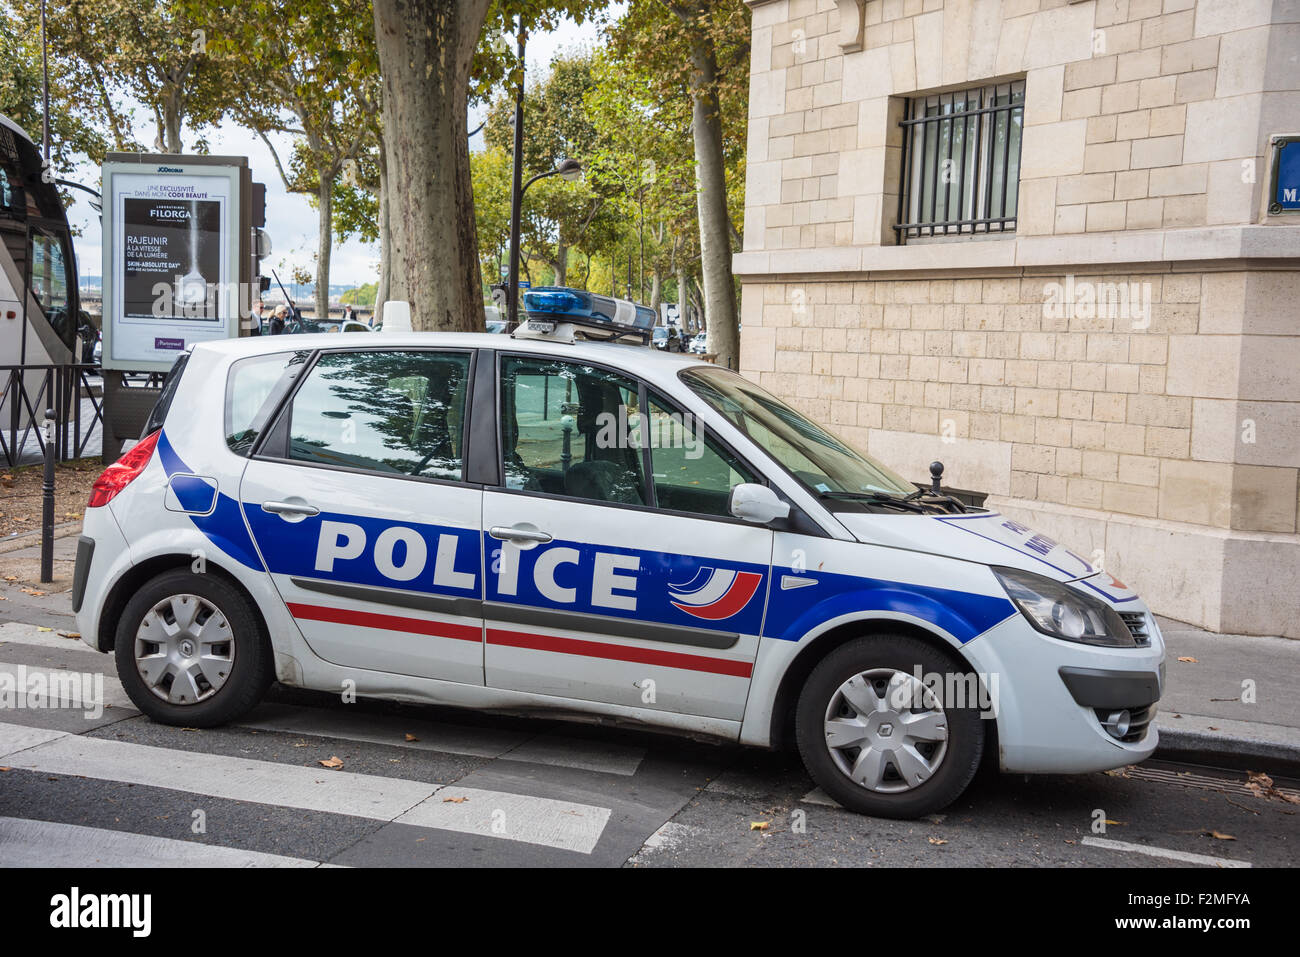 a french police car parked in a street in the european city of paris stock photo 87732718 alamy. Black Bedroom Furniture Sets. Home Design Ideas